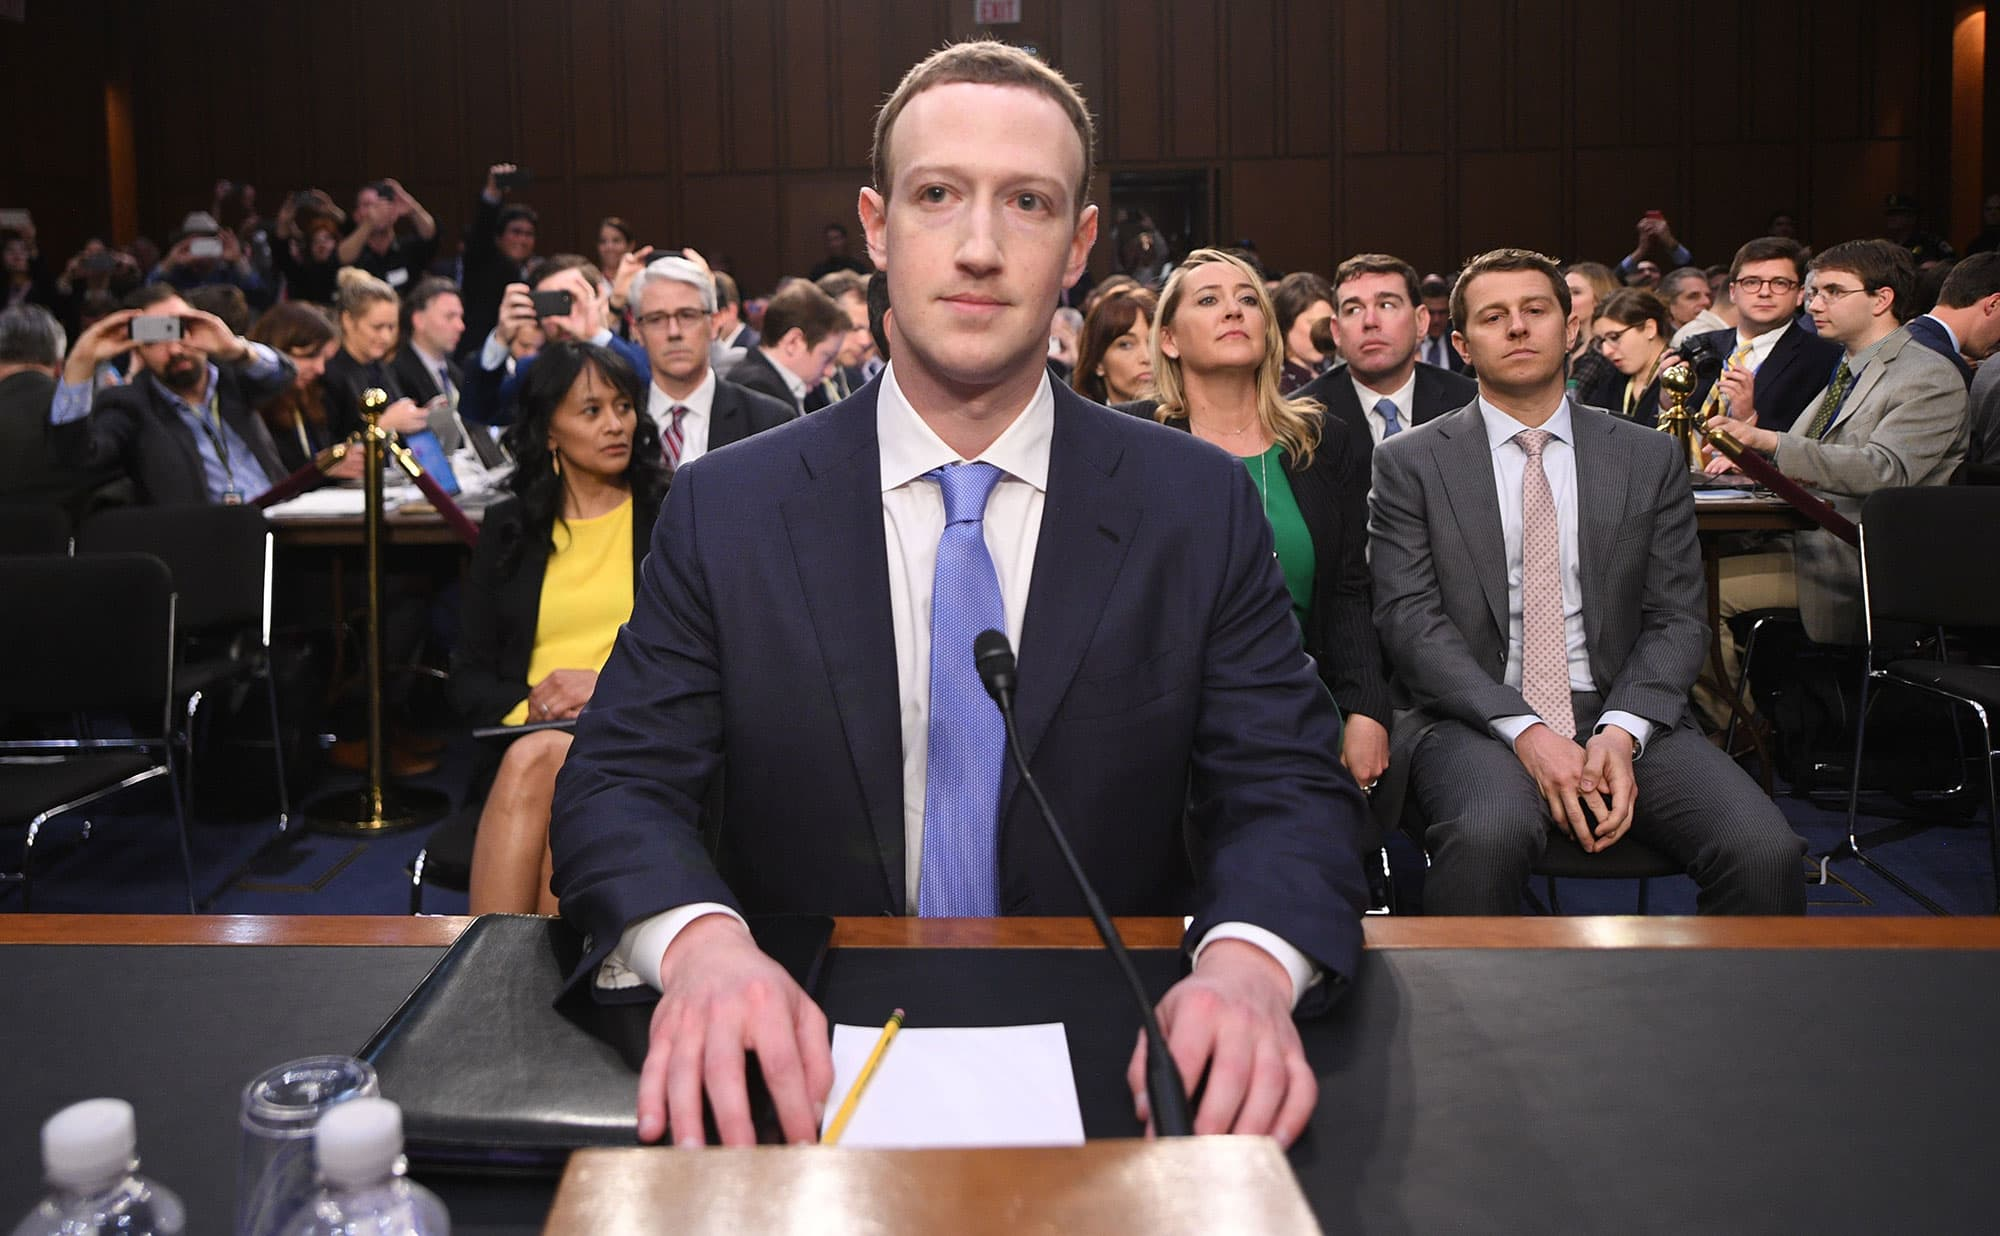 Watch Mark Zuckerberg deliver a speech on free expression at Georgetown University